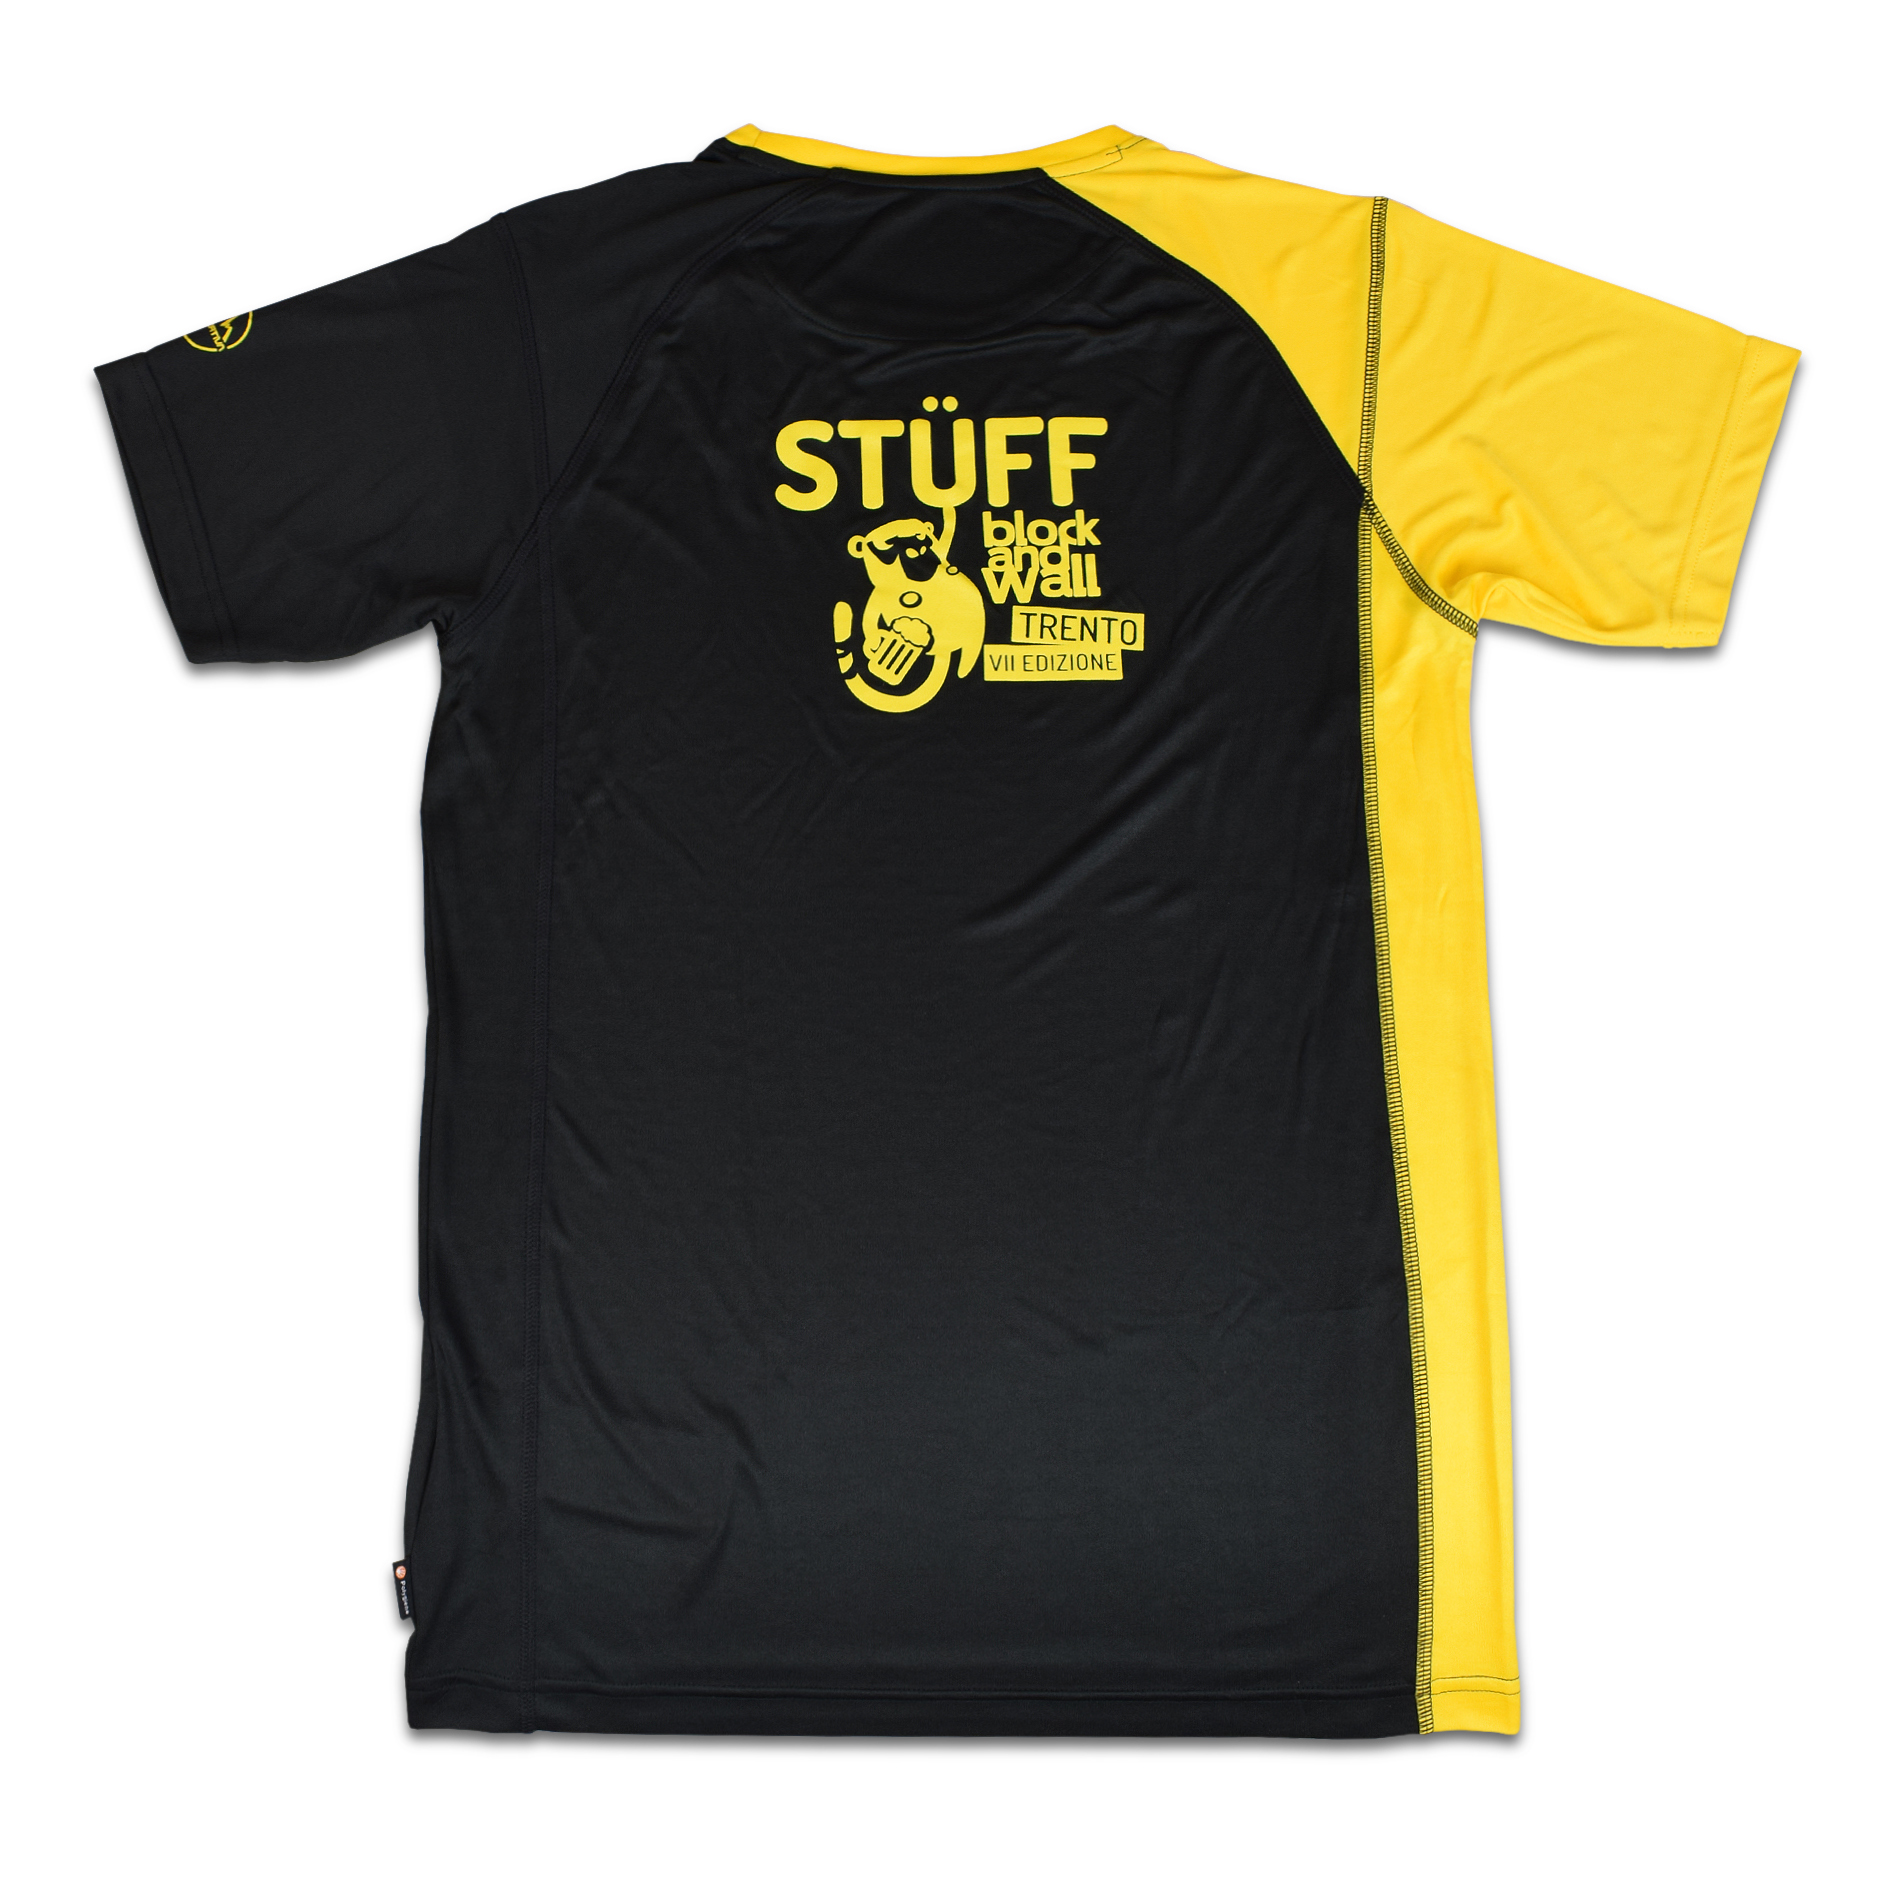 T-shirt tecnica Stüff Block and Wall La Sportiva